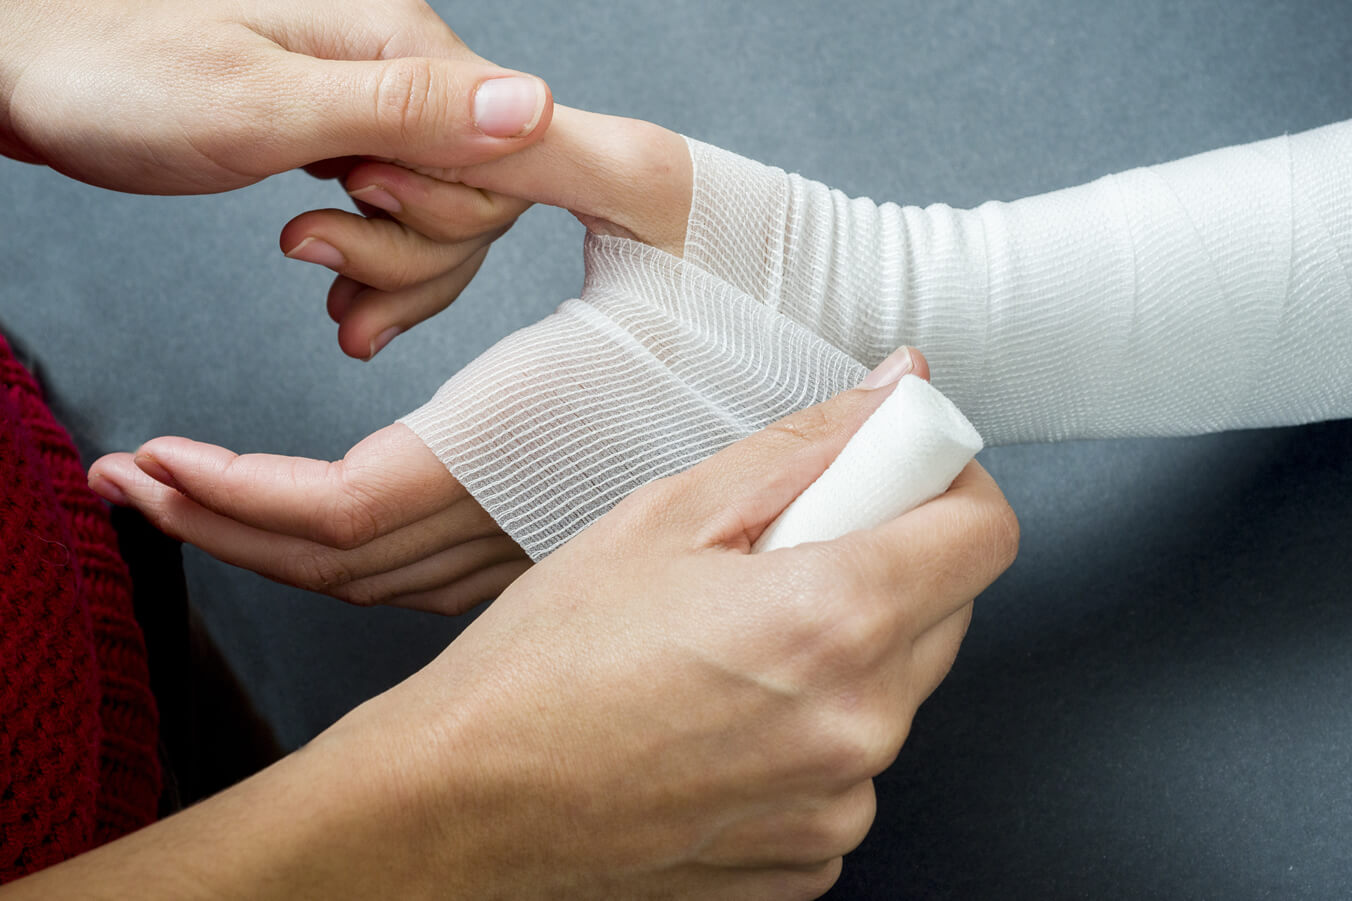 Our hand therapists specialize in the rehabilitation of hand, wrist, elbow shoulder injuries, including sprains and strains.